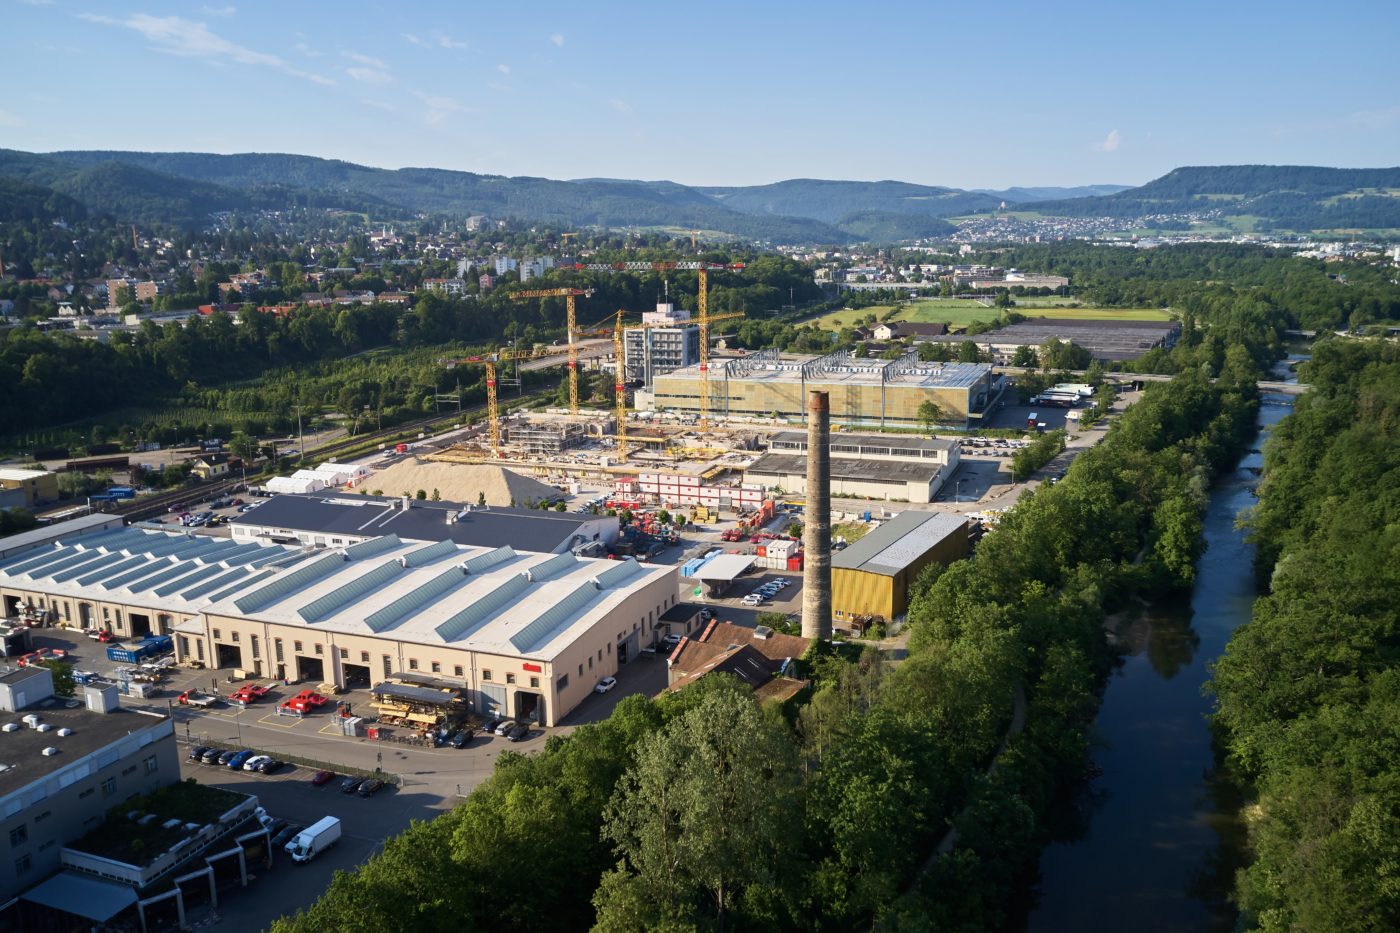 Photos for this media folder, View from the motorway connection H18 Reinach Nord towards Gempen. The first building, with a total usable area of 25,000 m2, will be ready by the end of 2020. 70 percent of the space has already been let. © Copyright Bela Böke, arbel gmbh  Digitale Medienmappe «Laying the uptownBasel foundation stone: a quantum leap for the industry», uptownBasel